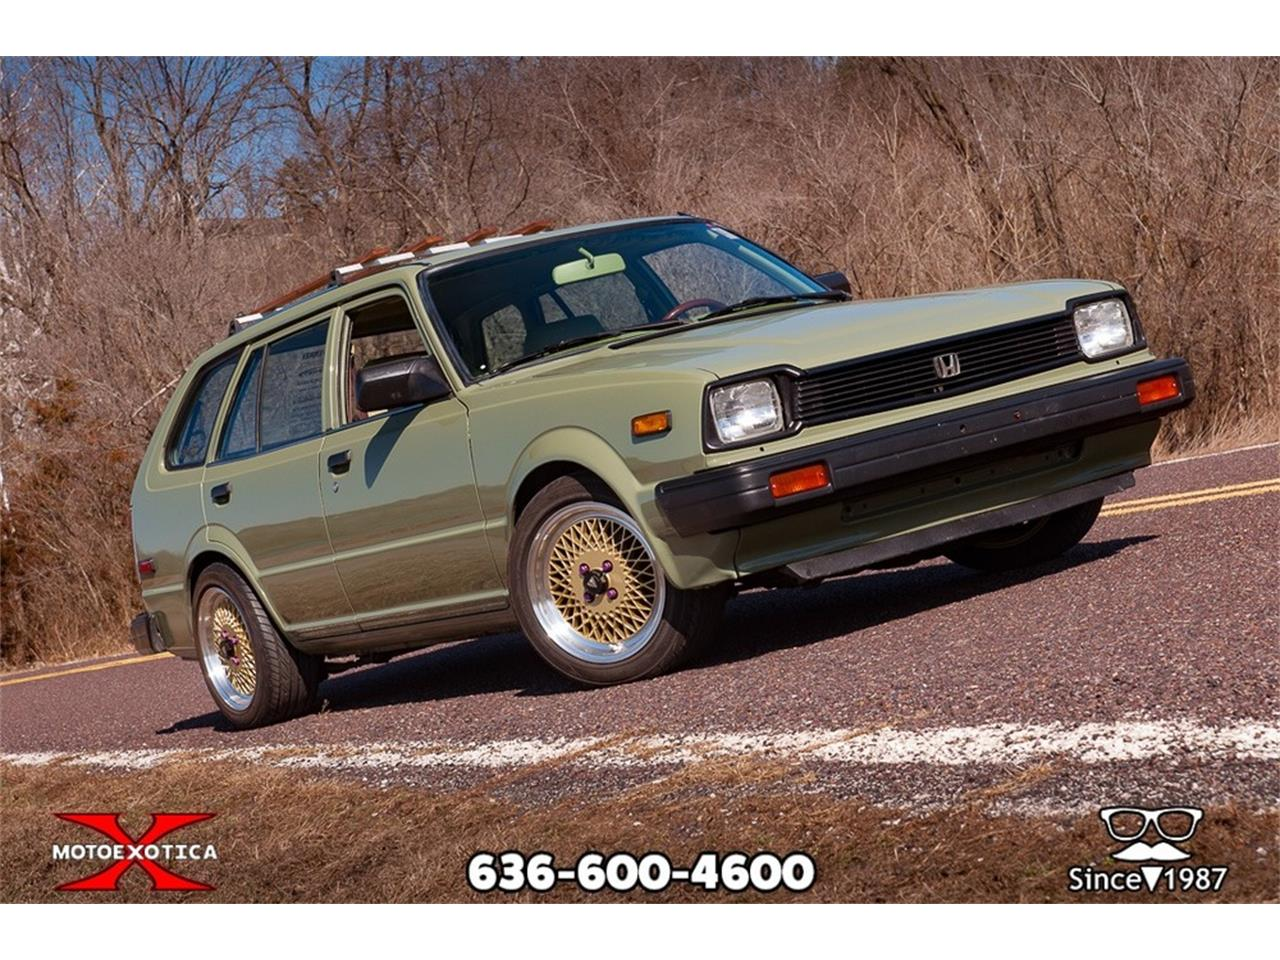 1983 Honda Civic Wagon for sale in St. Louis, MO – photo 2